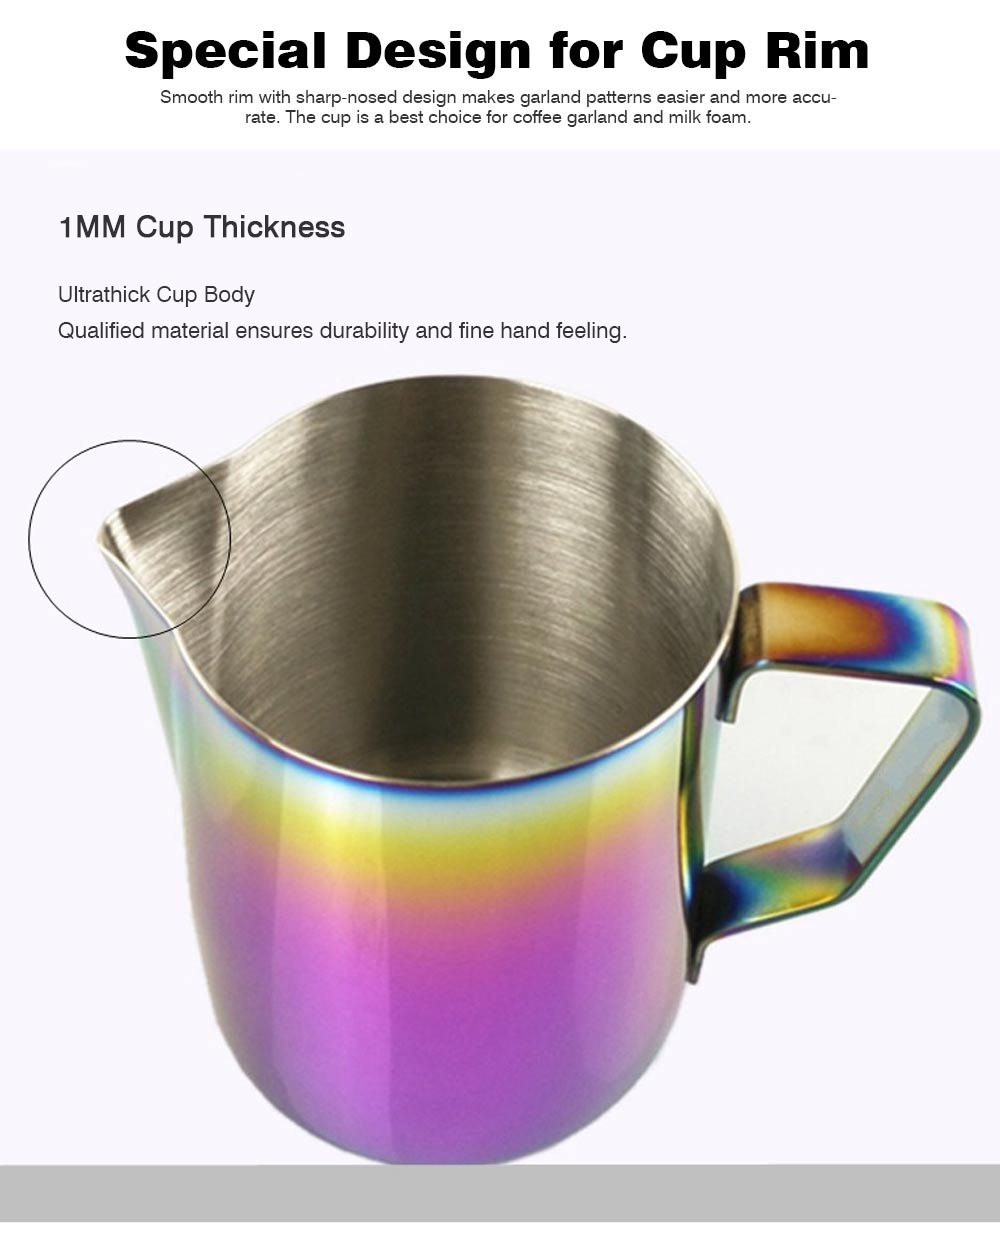 Teflon-coated Stainless Steel Garland Cup with Dazzling Color, 600ml Garland Mug Milk Foam Cup Fancy Cup 1